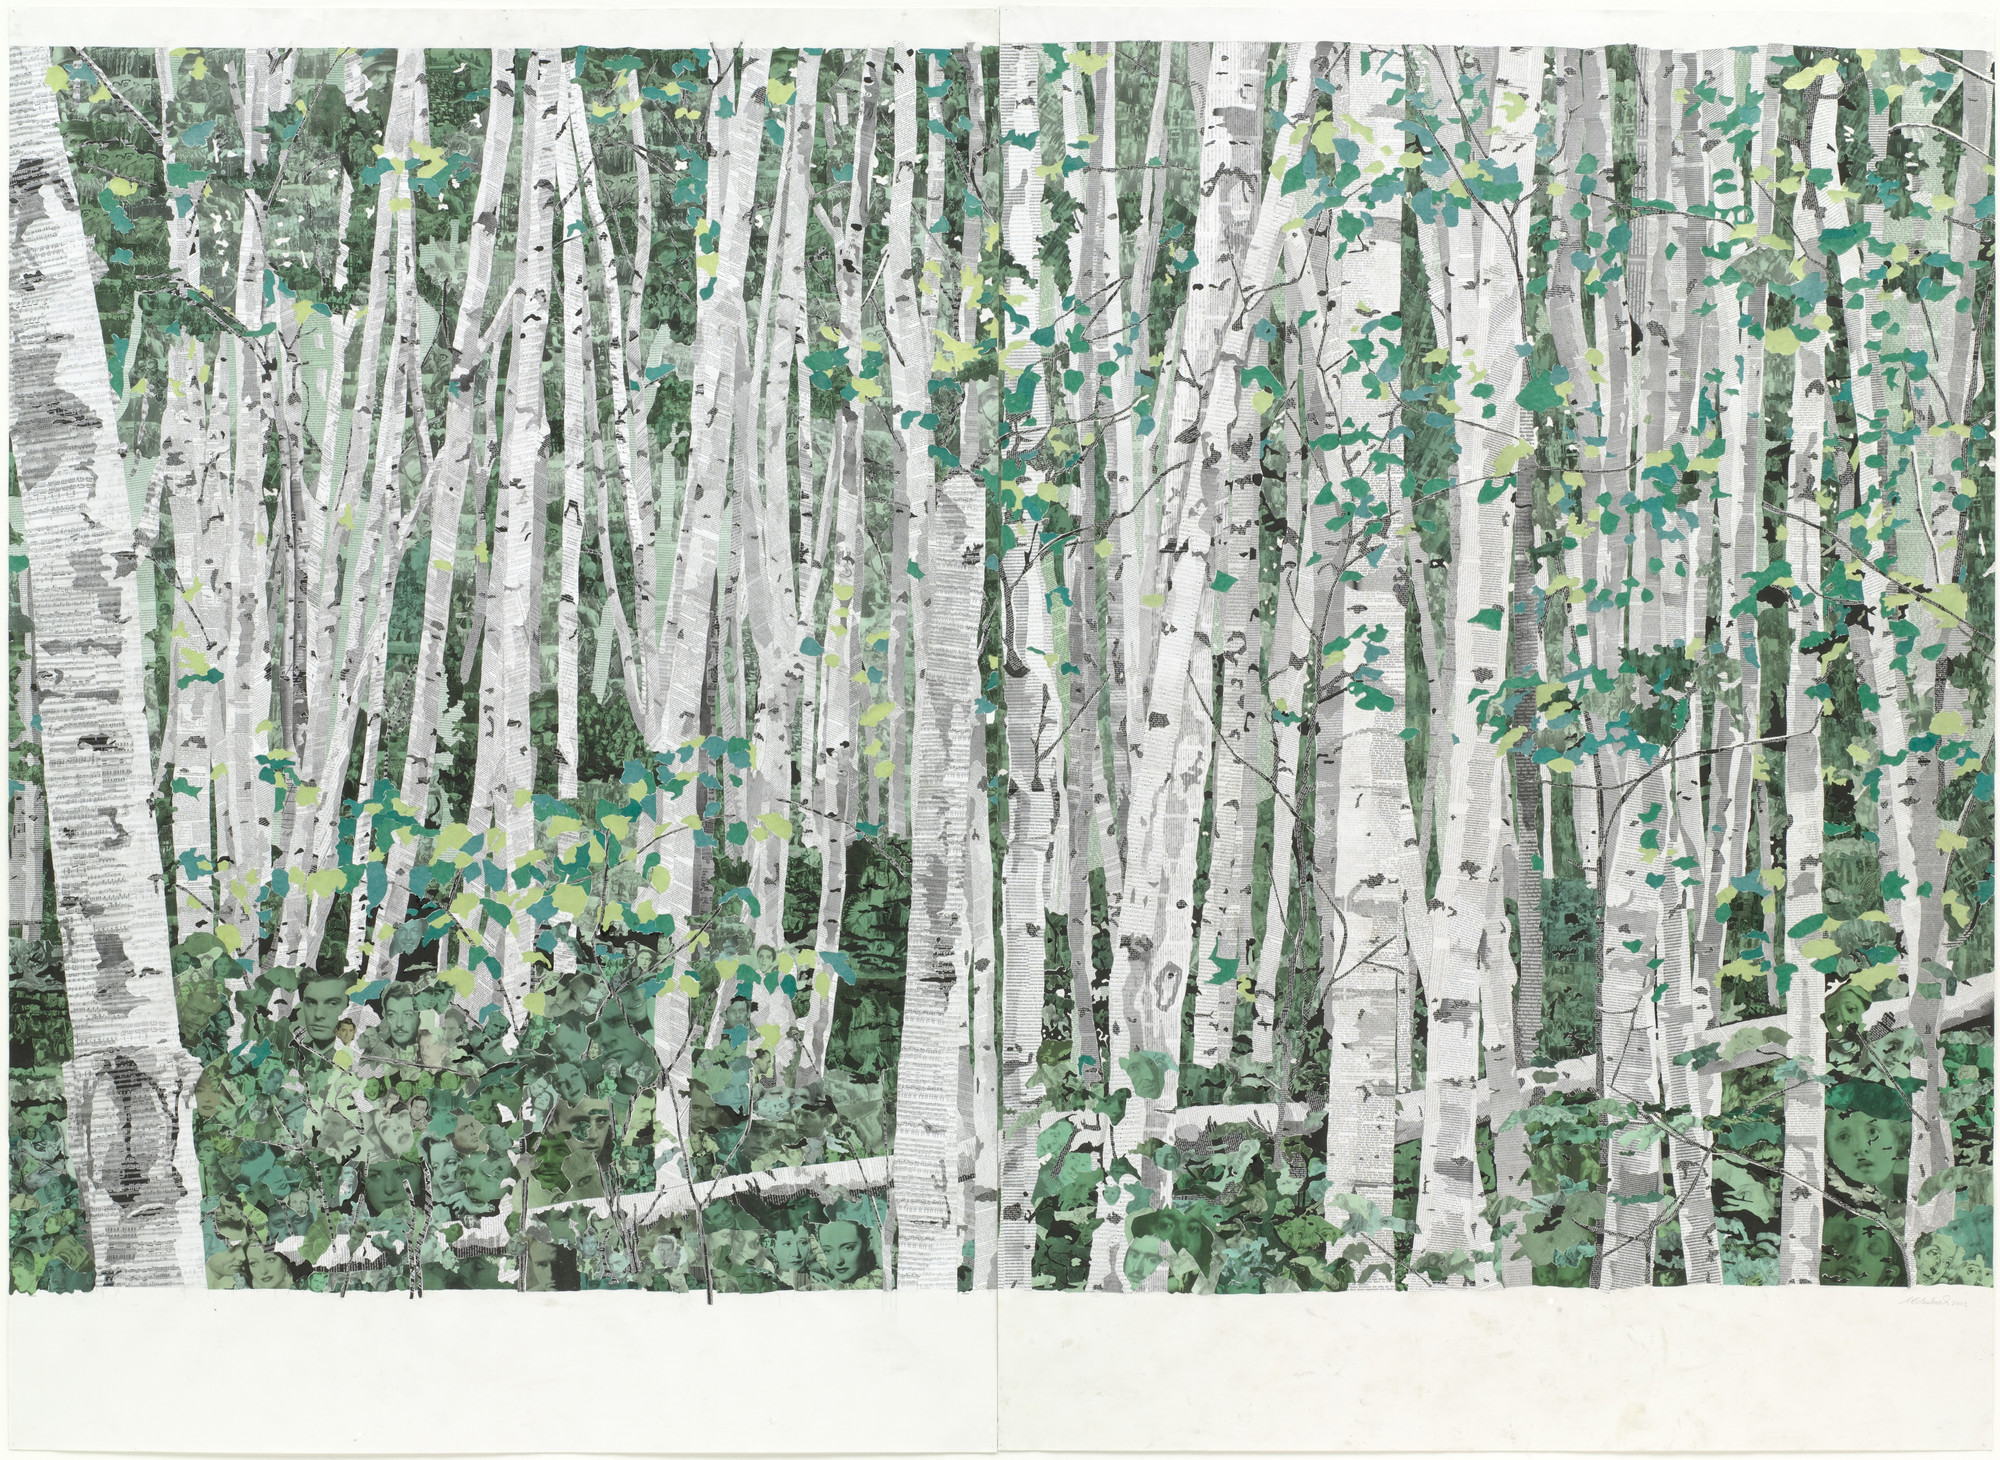 Marcel Odenbach. You Can't See the Forest for the Trees. 2003